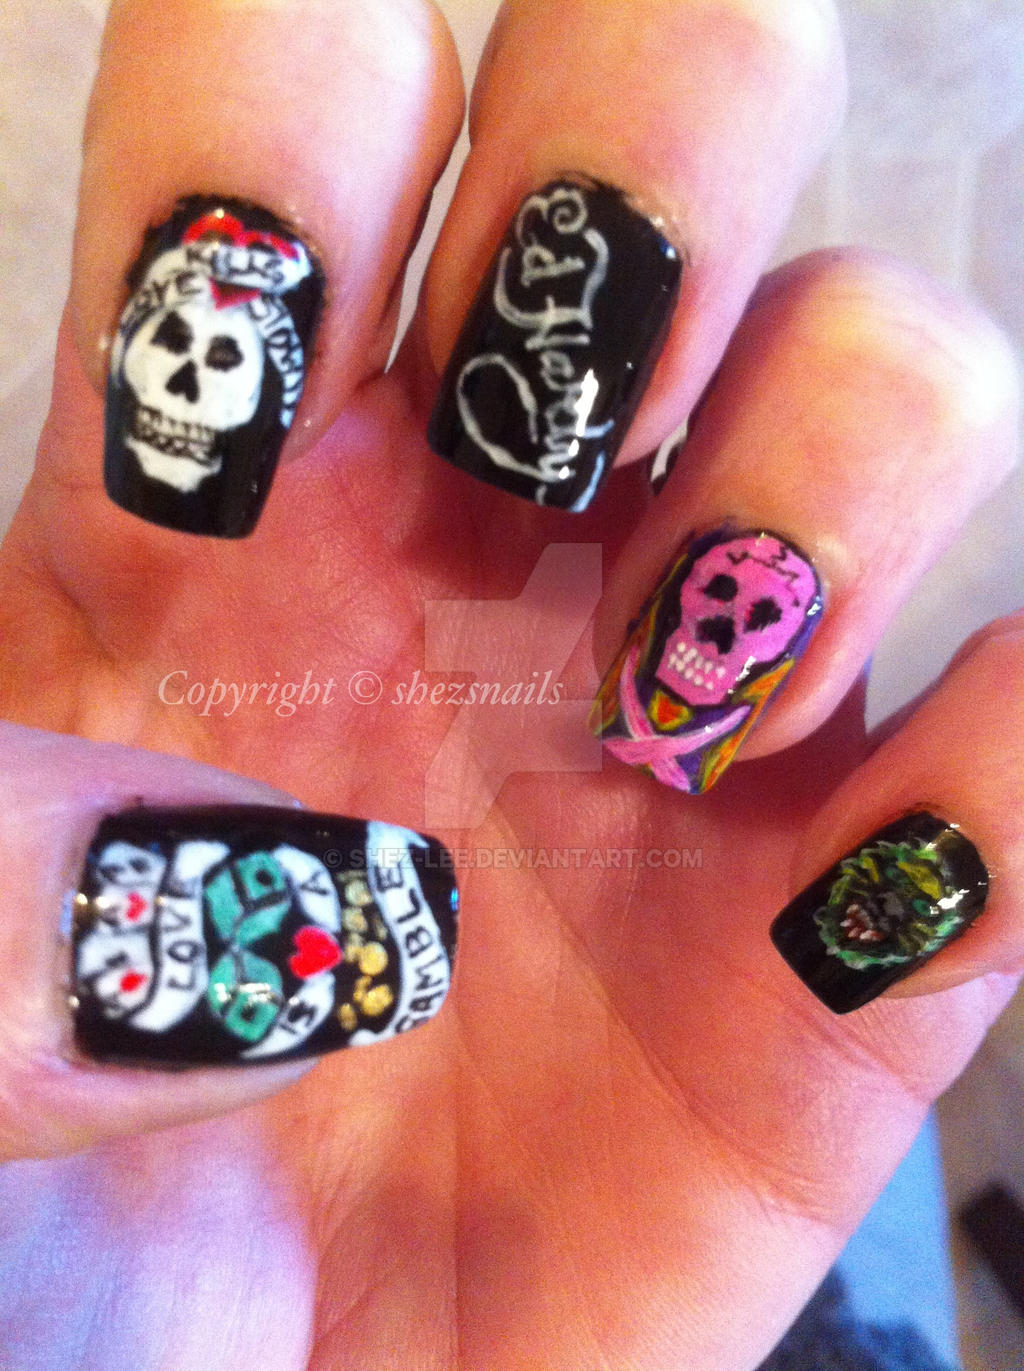 Nail Art Ideas » Ed Hardy Nail Art - Pictures of Nail Art Design Ideas